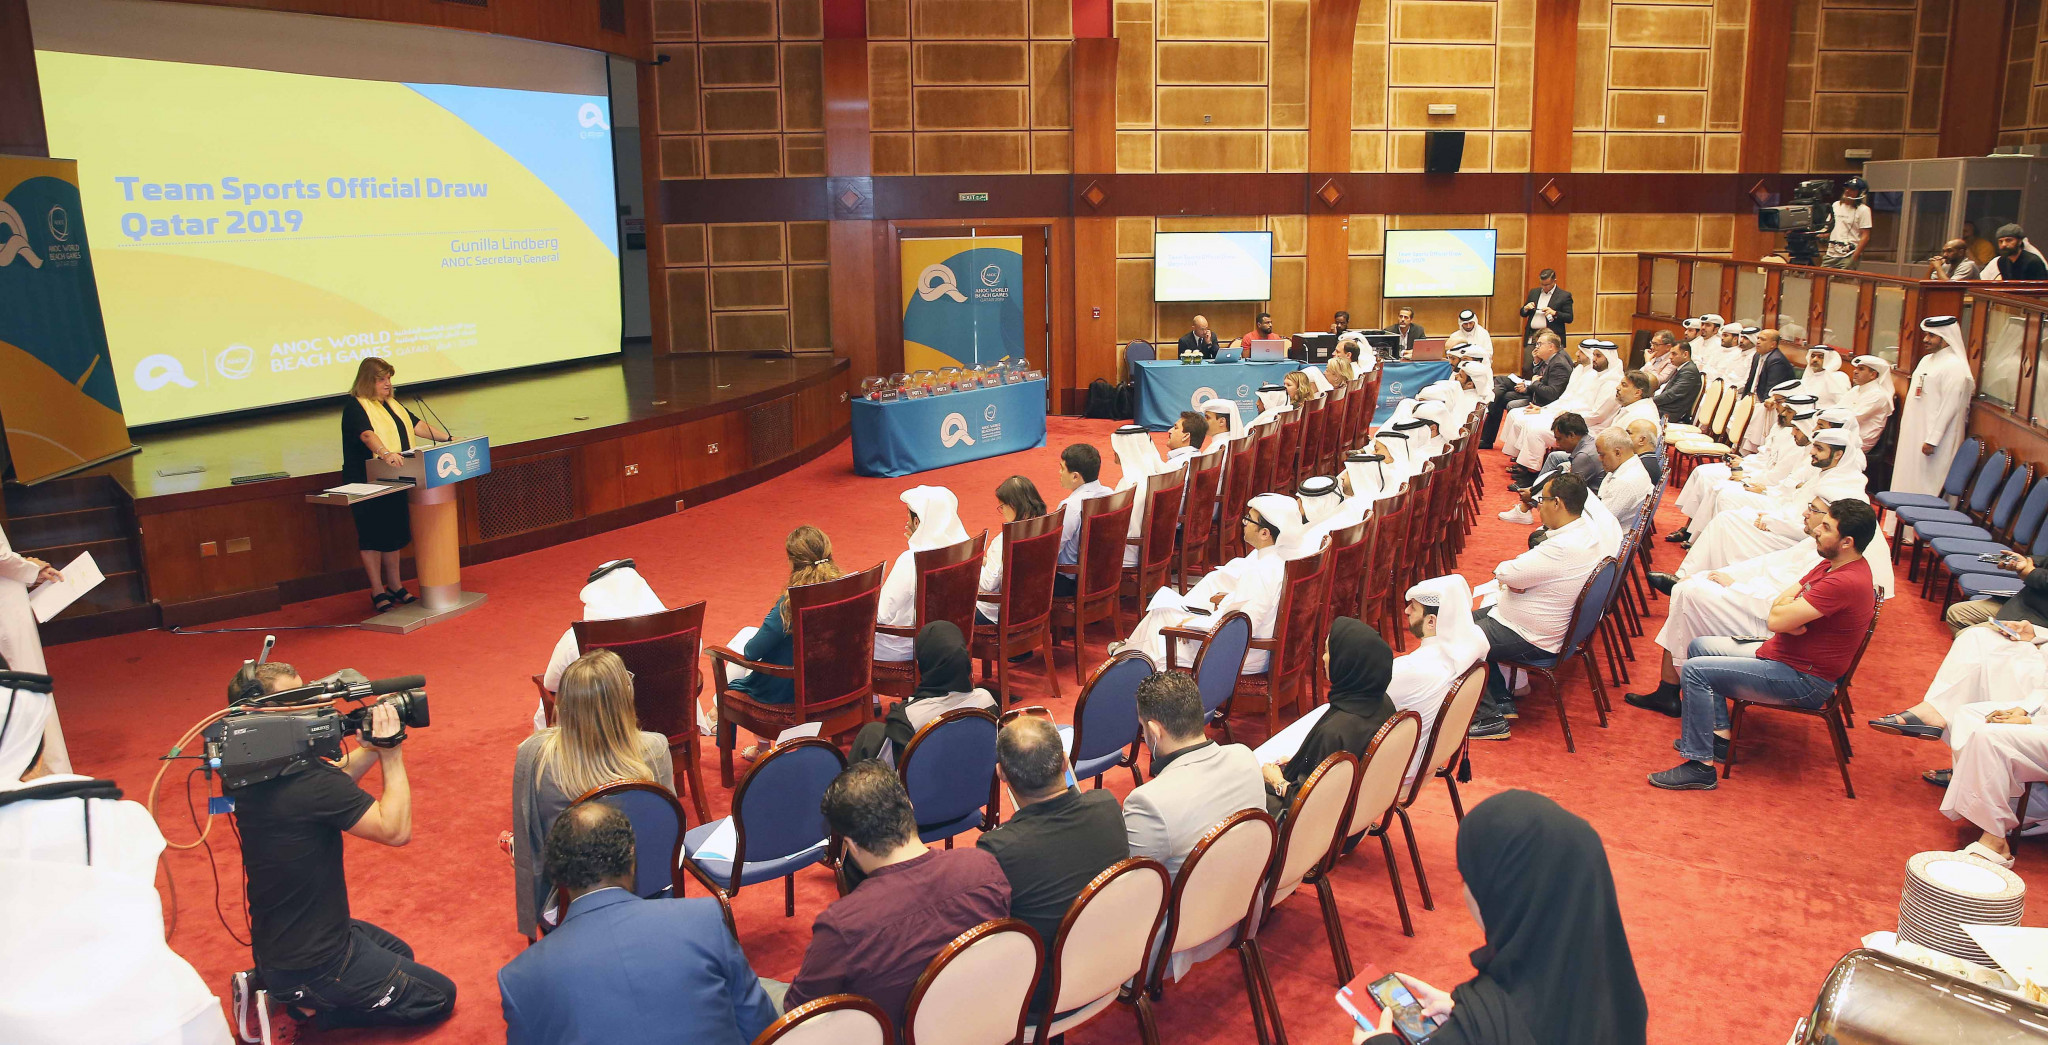 ANOC World Beach Games team sports draw takes place in Doha